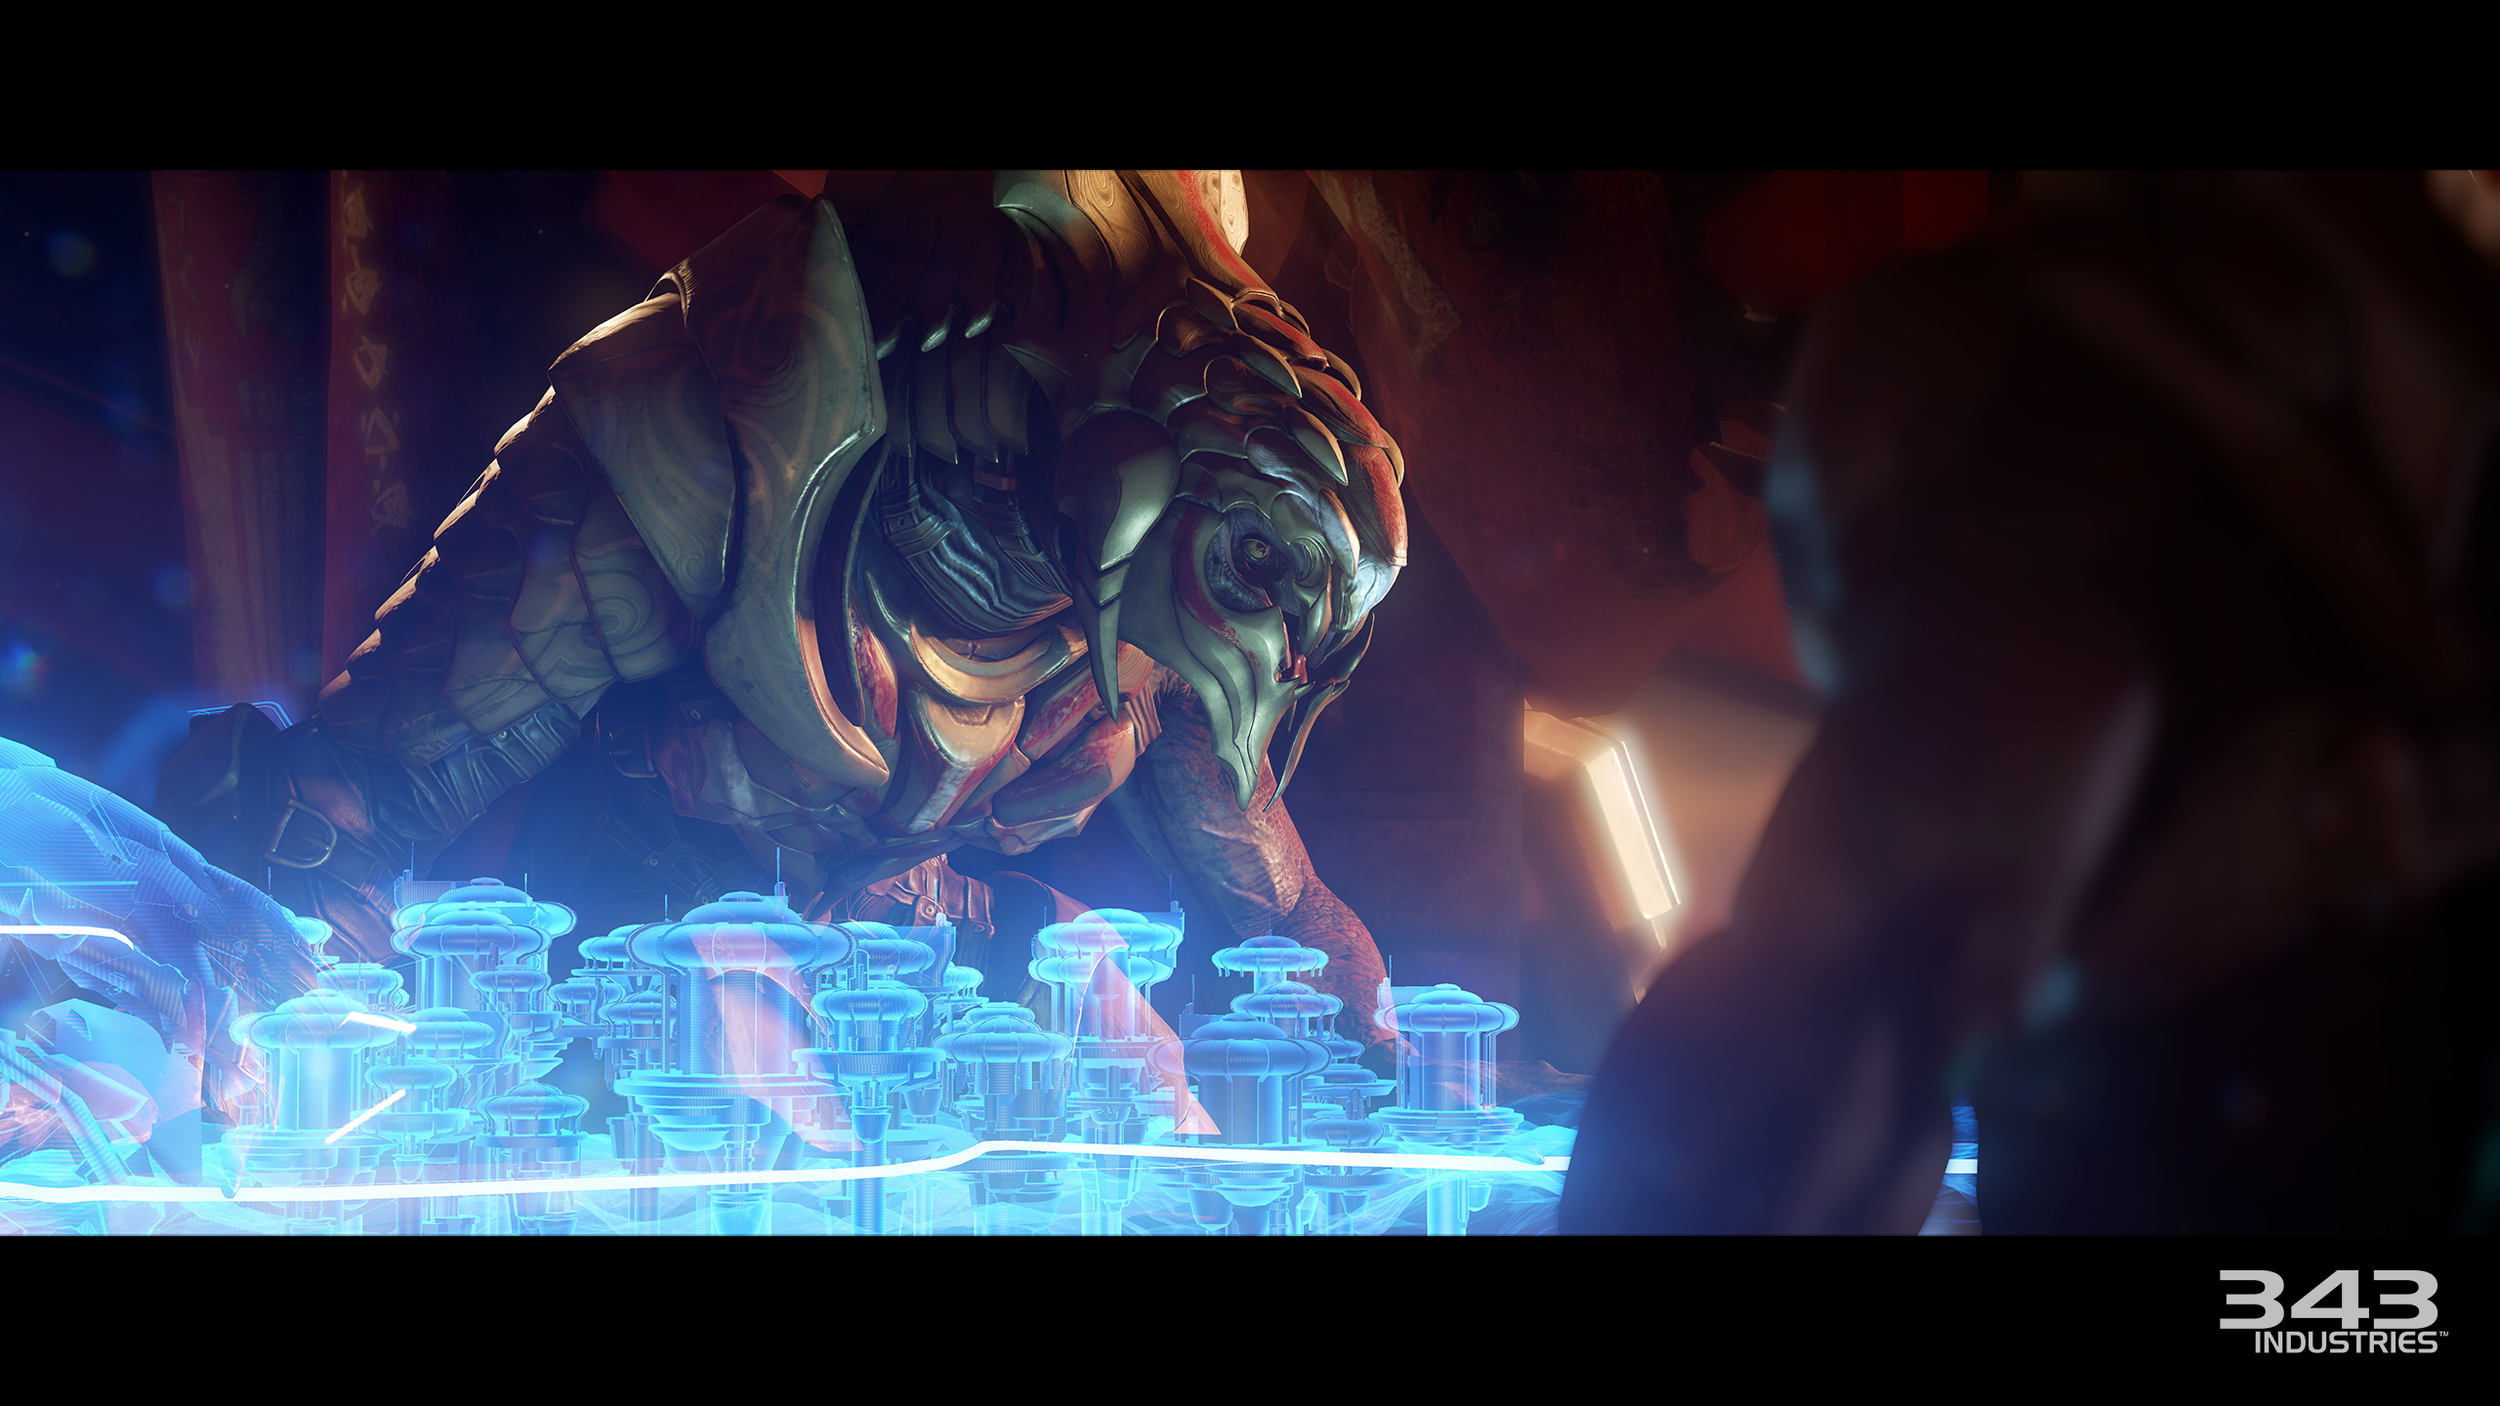 h5-guardians-cinematic-campaign-battle-of-sunaion-plans-and-portents.jpg